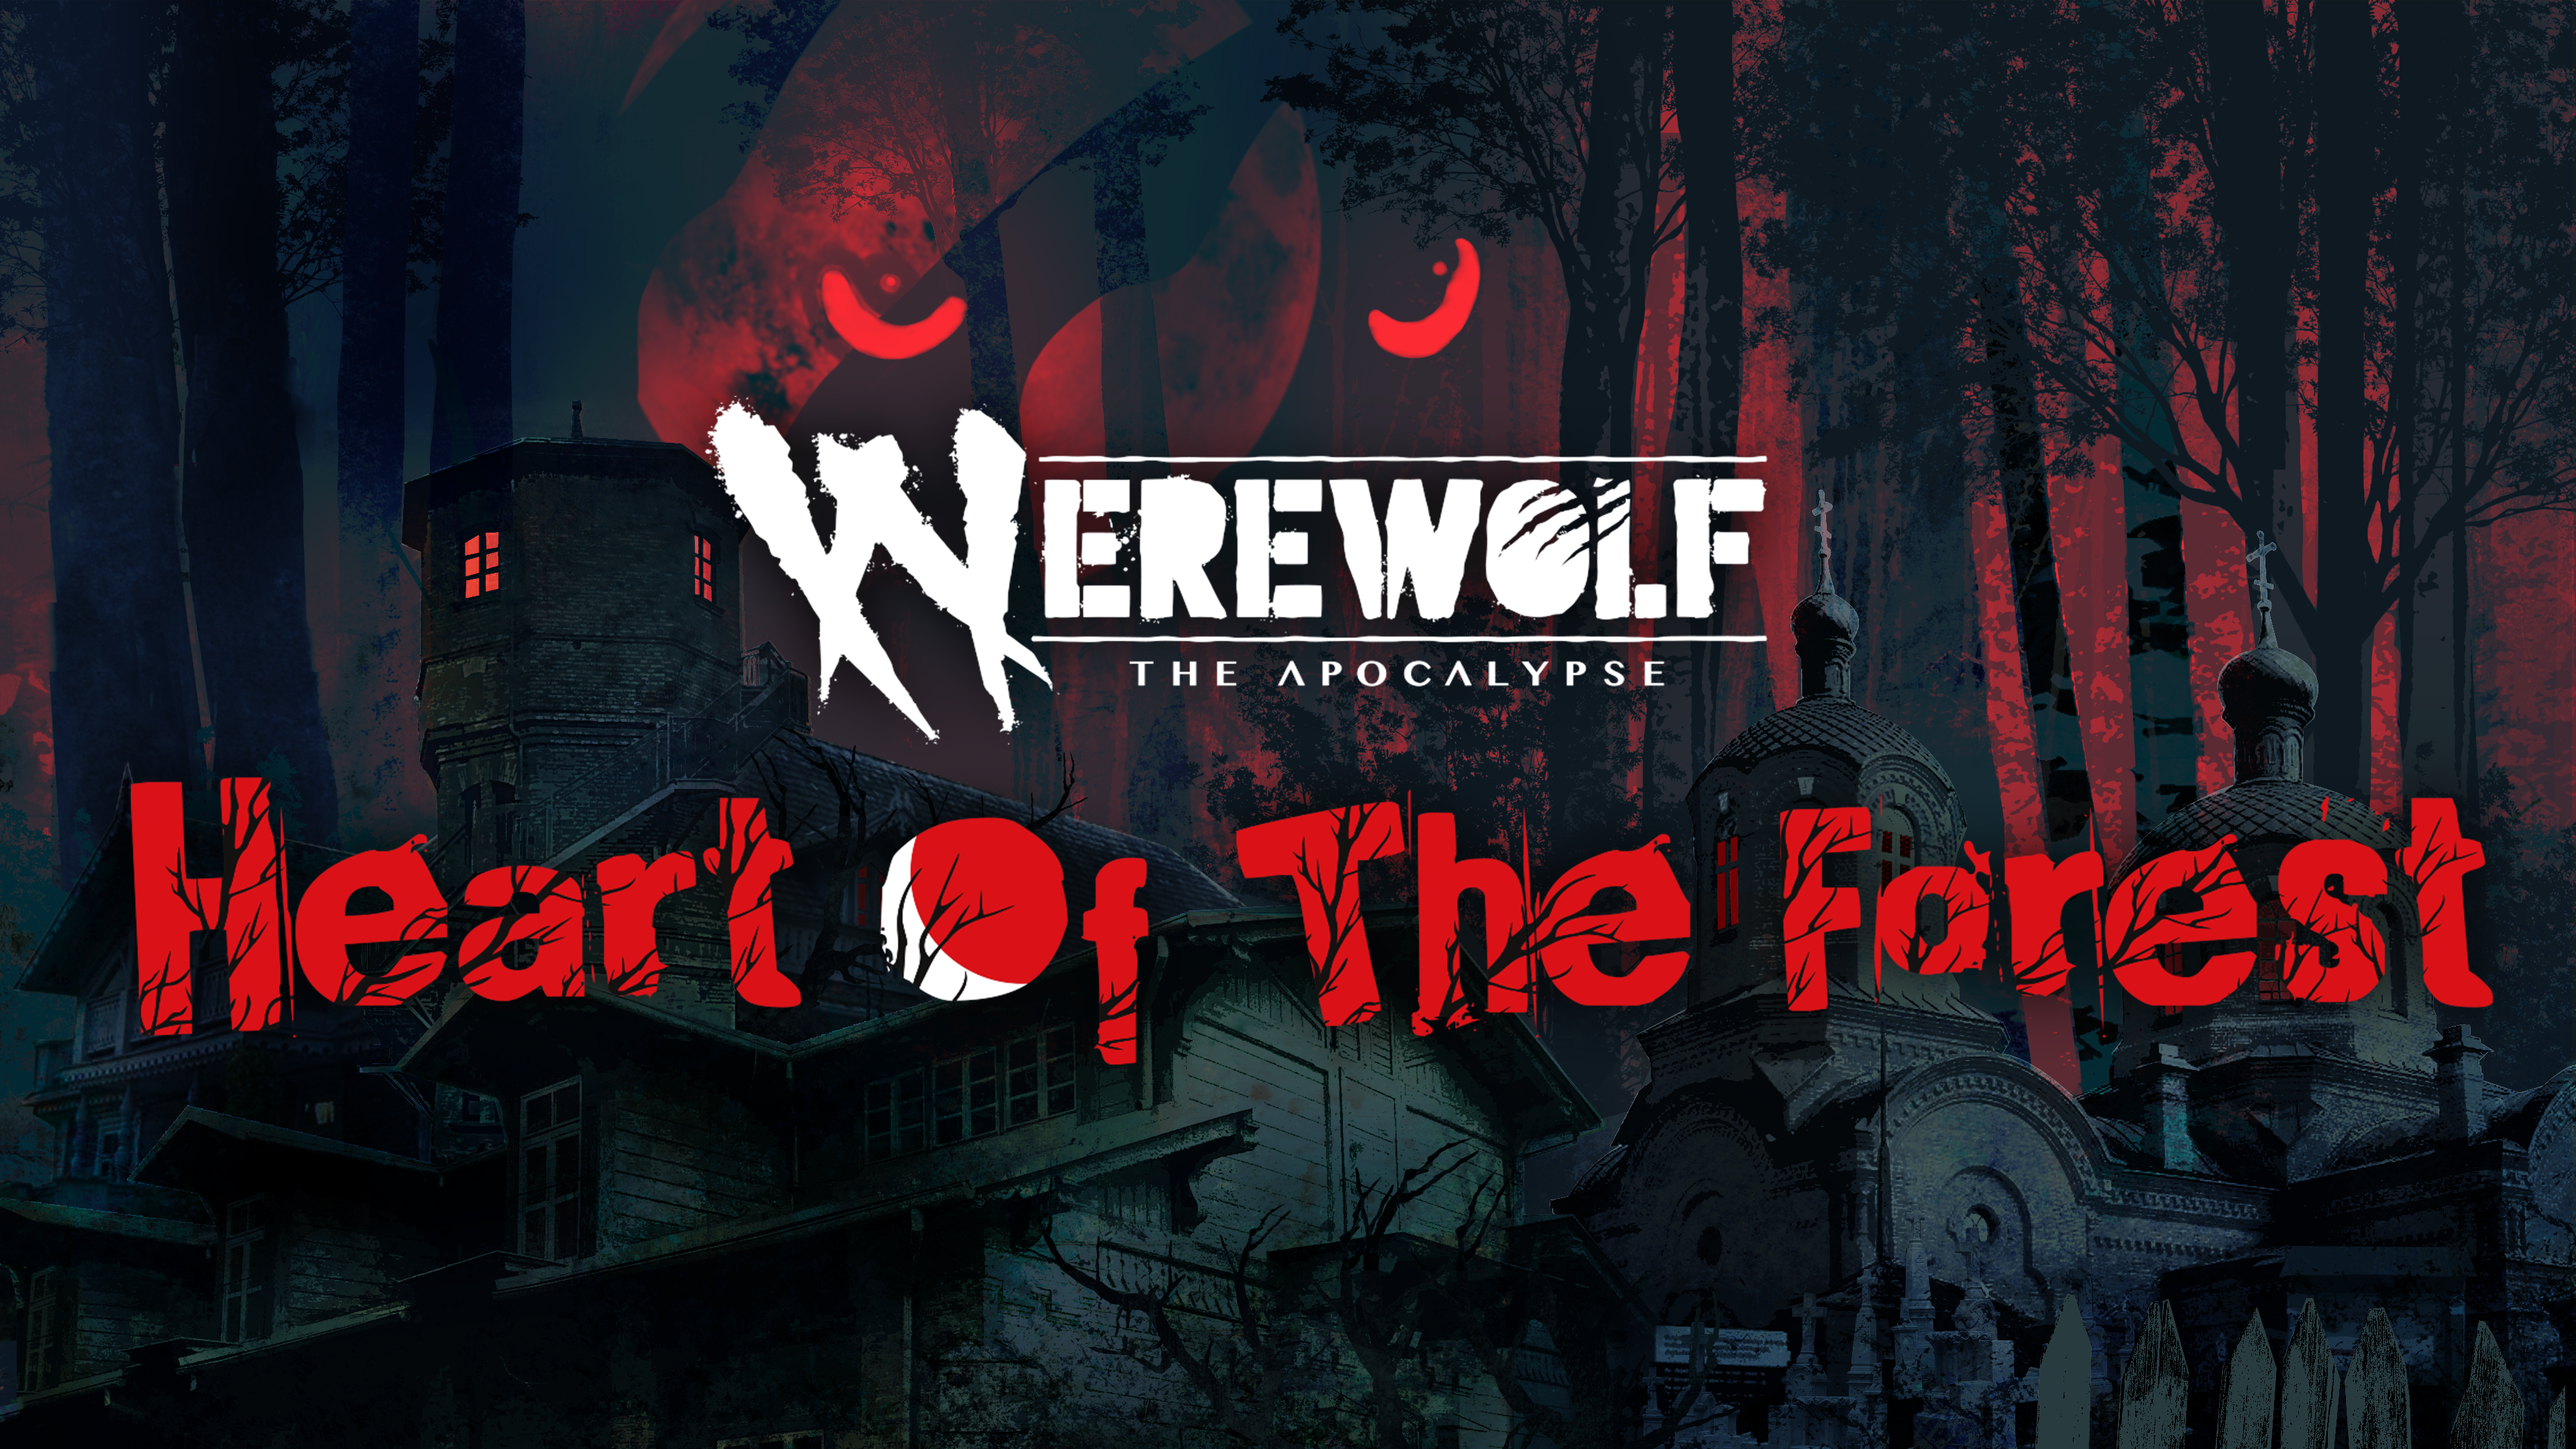 werewolf_the_apocalypse_heart_of_the_forest_kv_big_logo-1